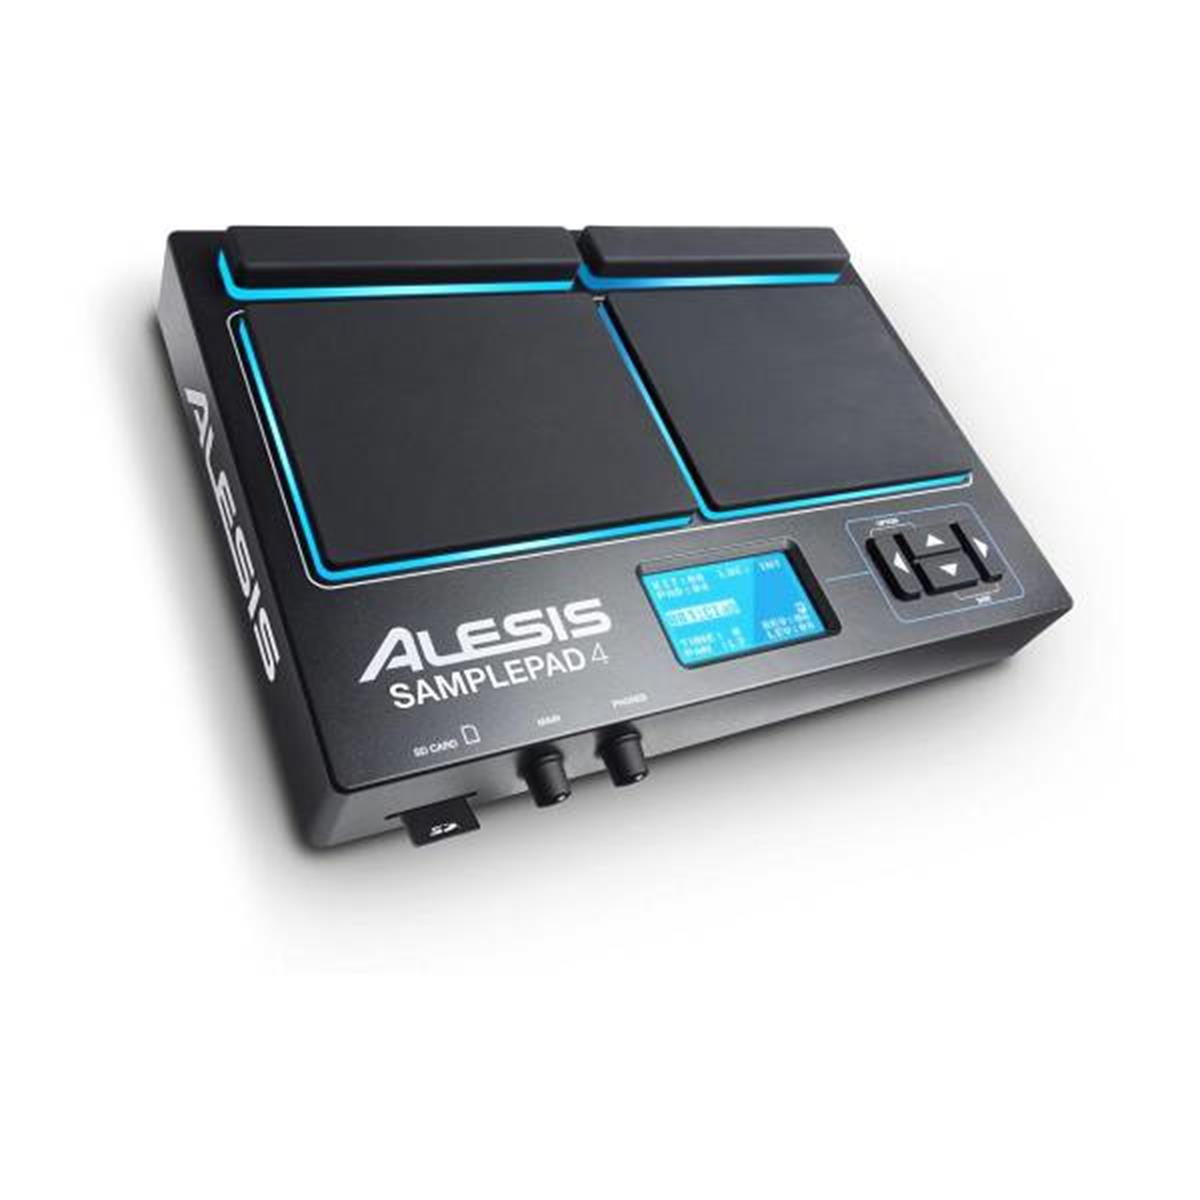 ALESIS SAMPLEPAD 4: PERCUSSIONE ELETTRONICA E SAMPLE PLAYER A 4 PAD